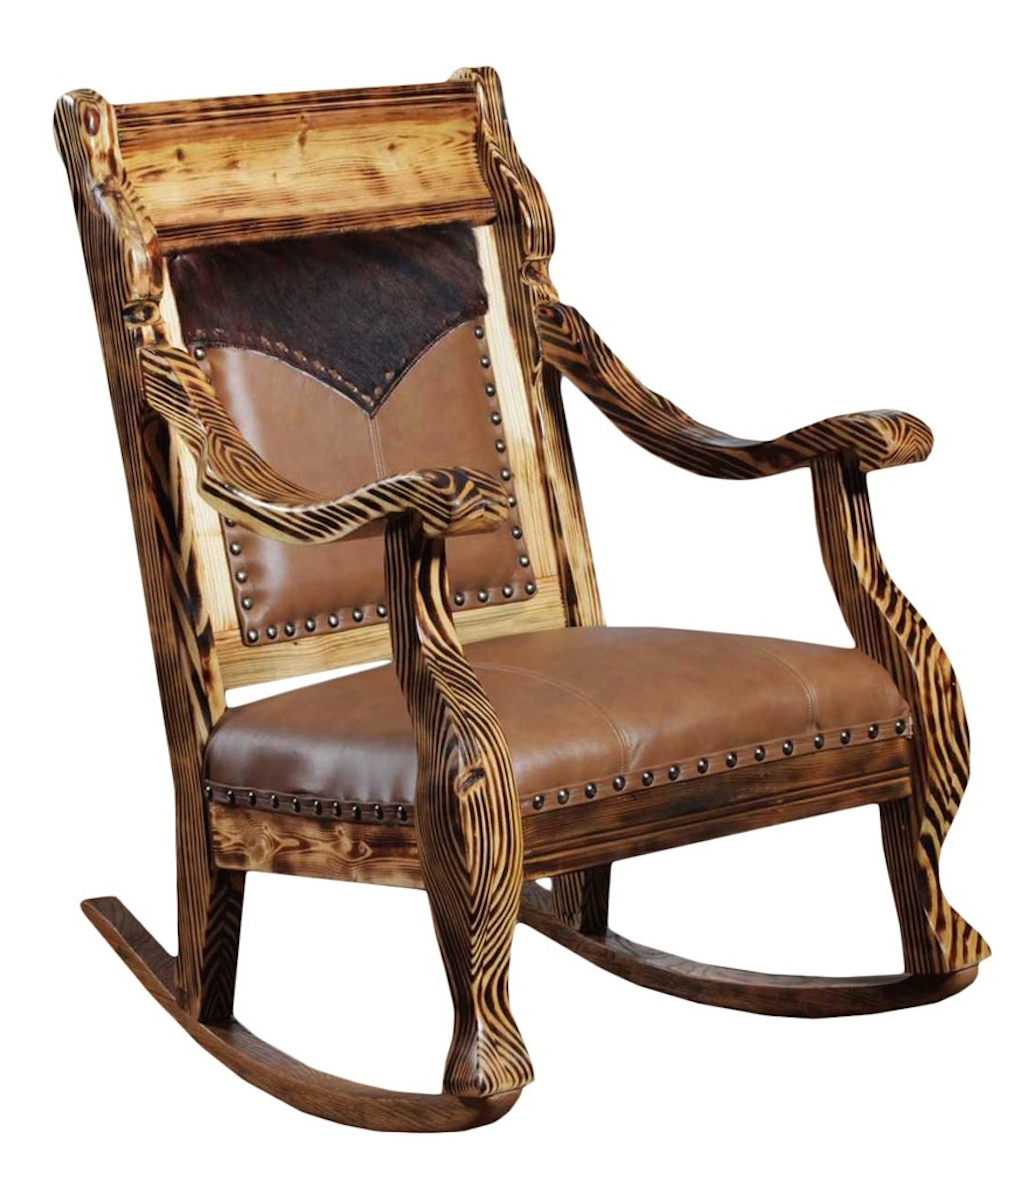 Cowhide  Leather Rocker  RusticArtistrycom  Rocking Chair